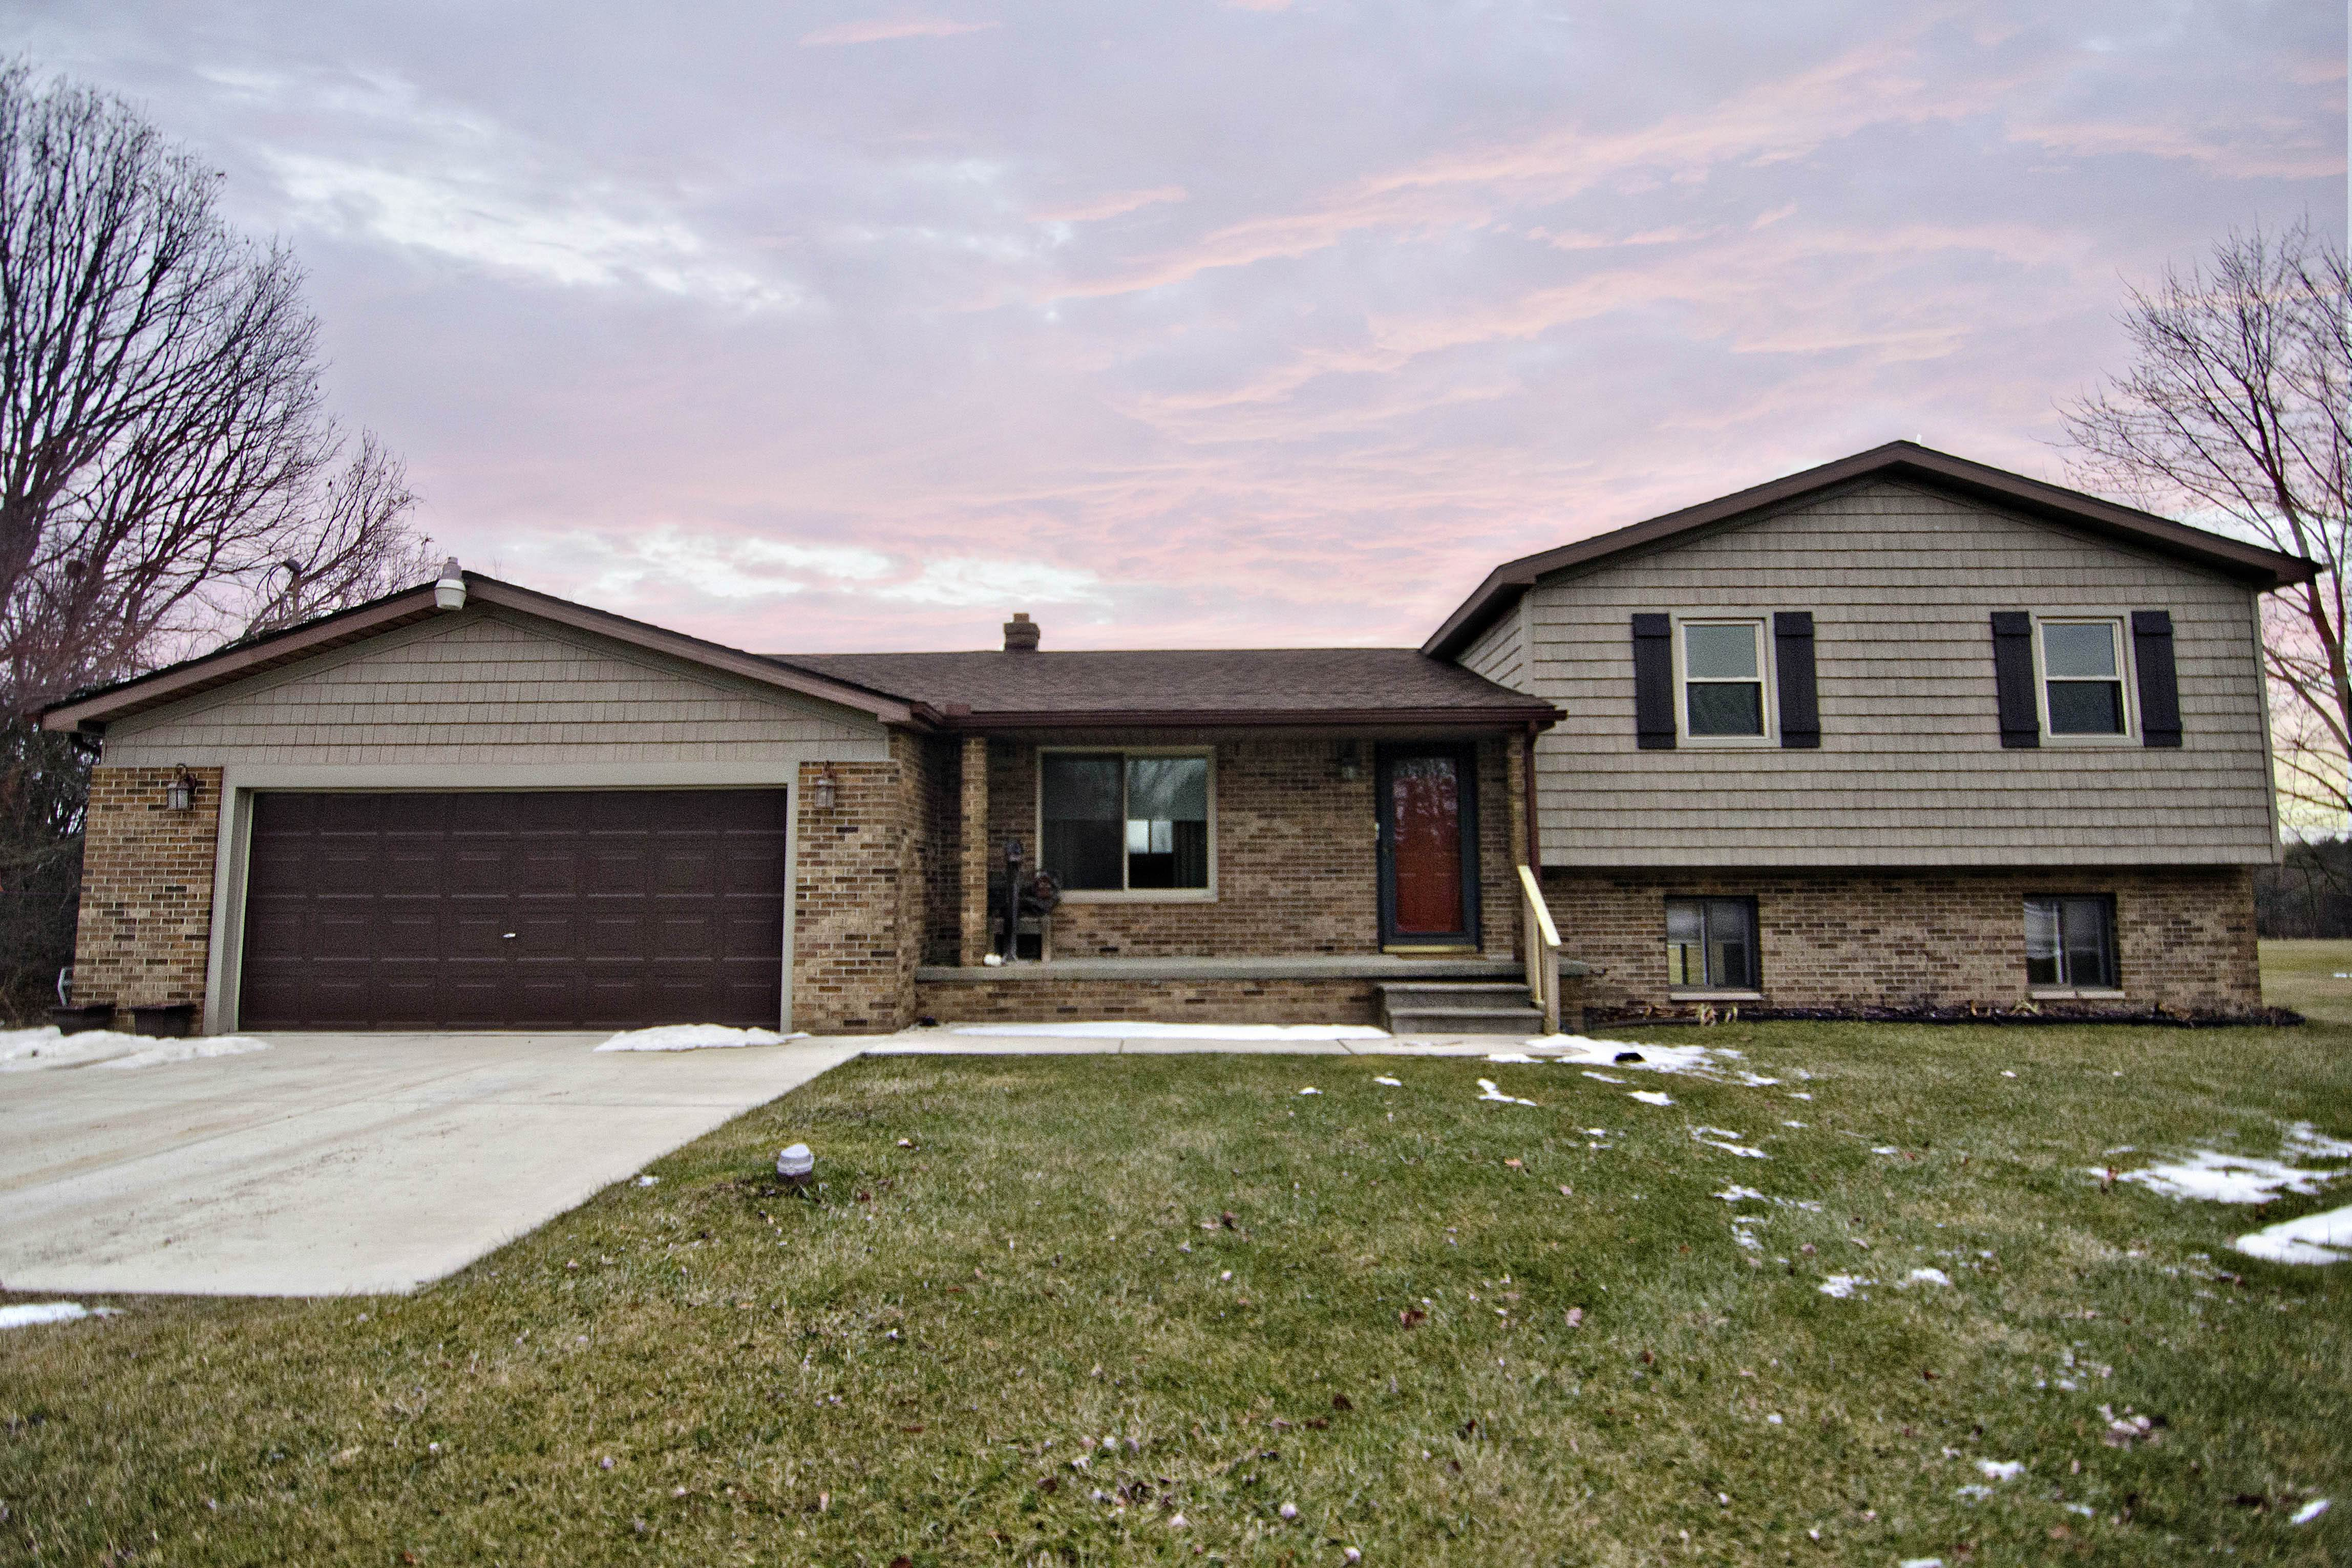 2271 S Oak - Shelter and Show Video- GO!